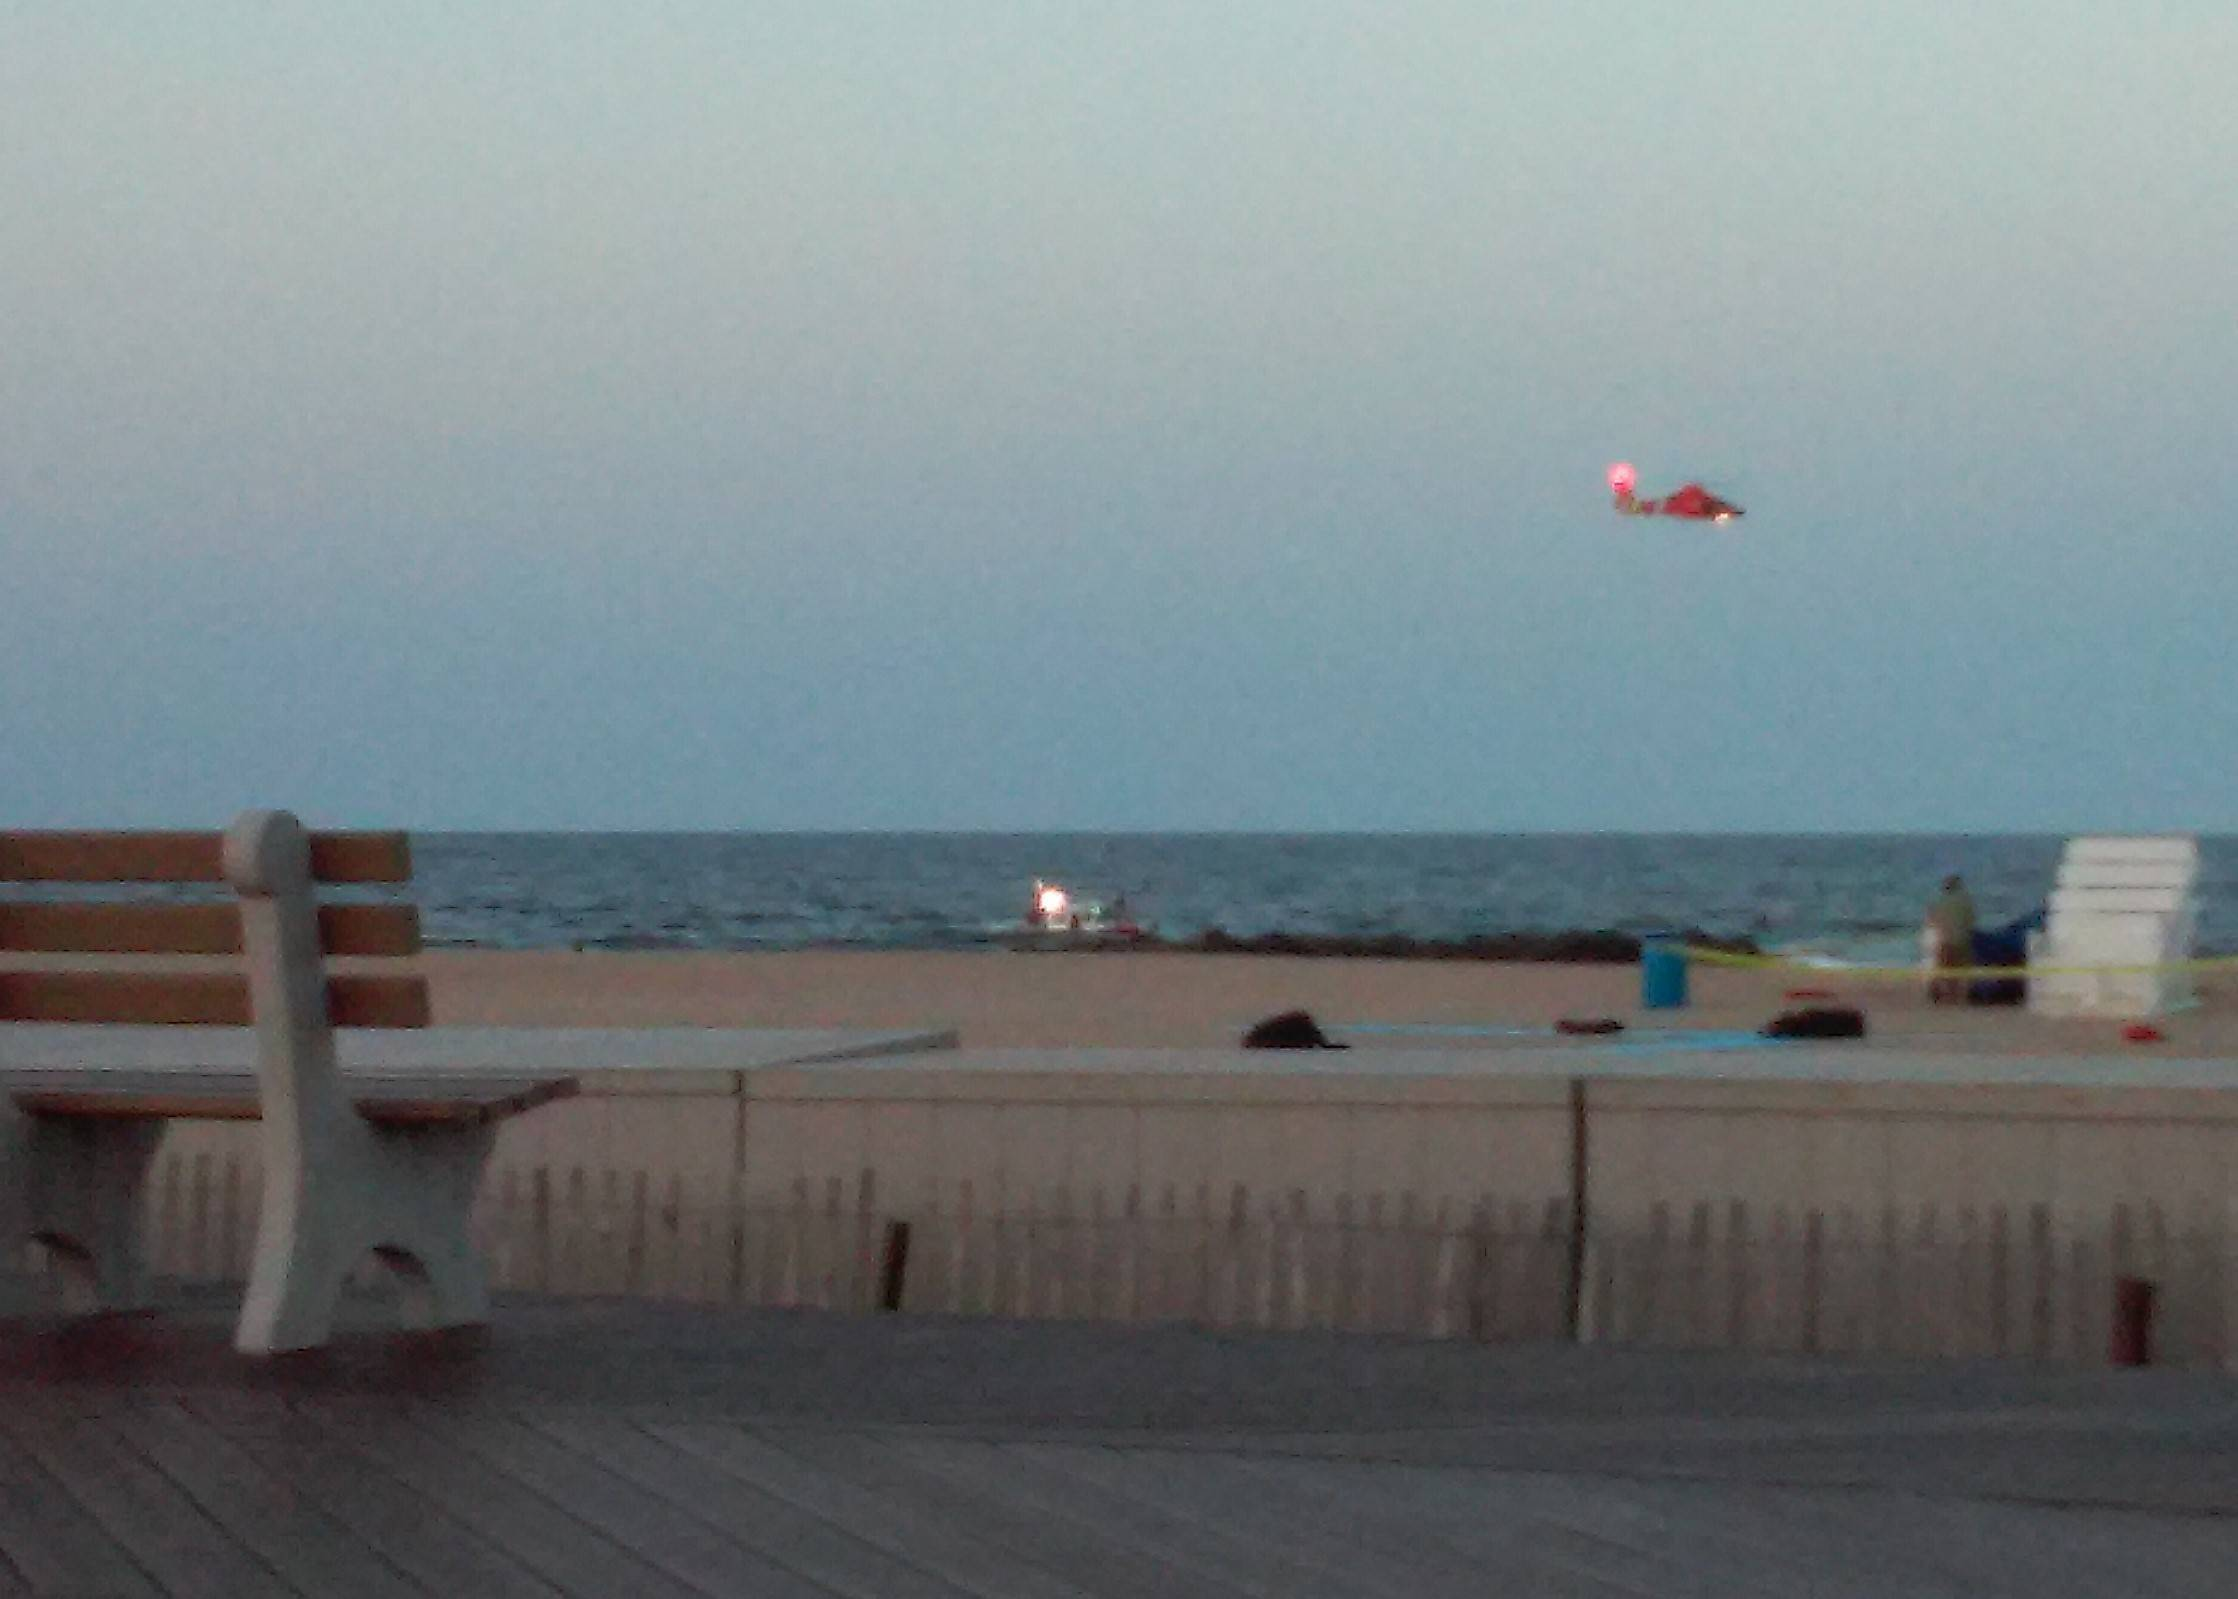 Rip currents leave 1 dead, 2 missing at Jersey shore